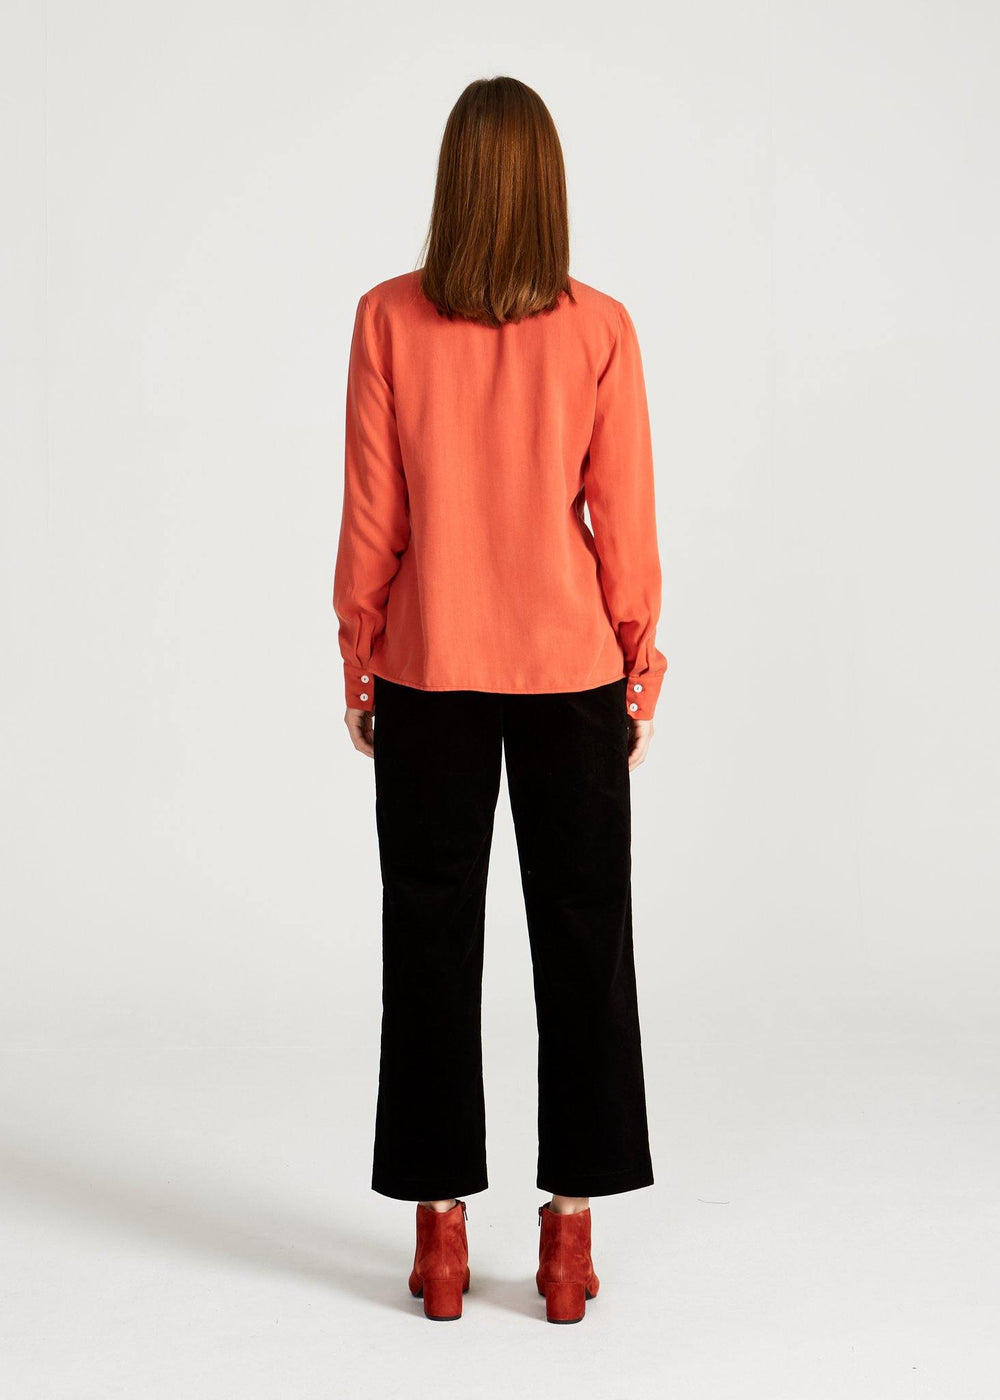 Givn BERLIN Zoe Buttoned Shirt Dark Coral (Tencel)